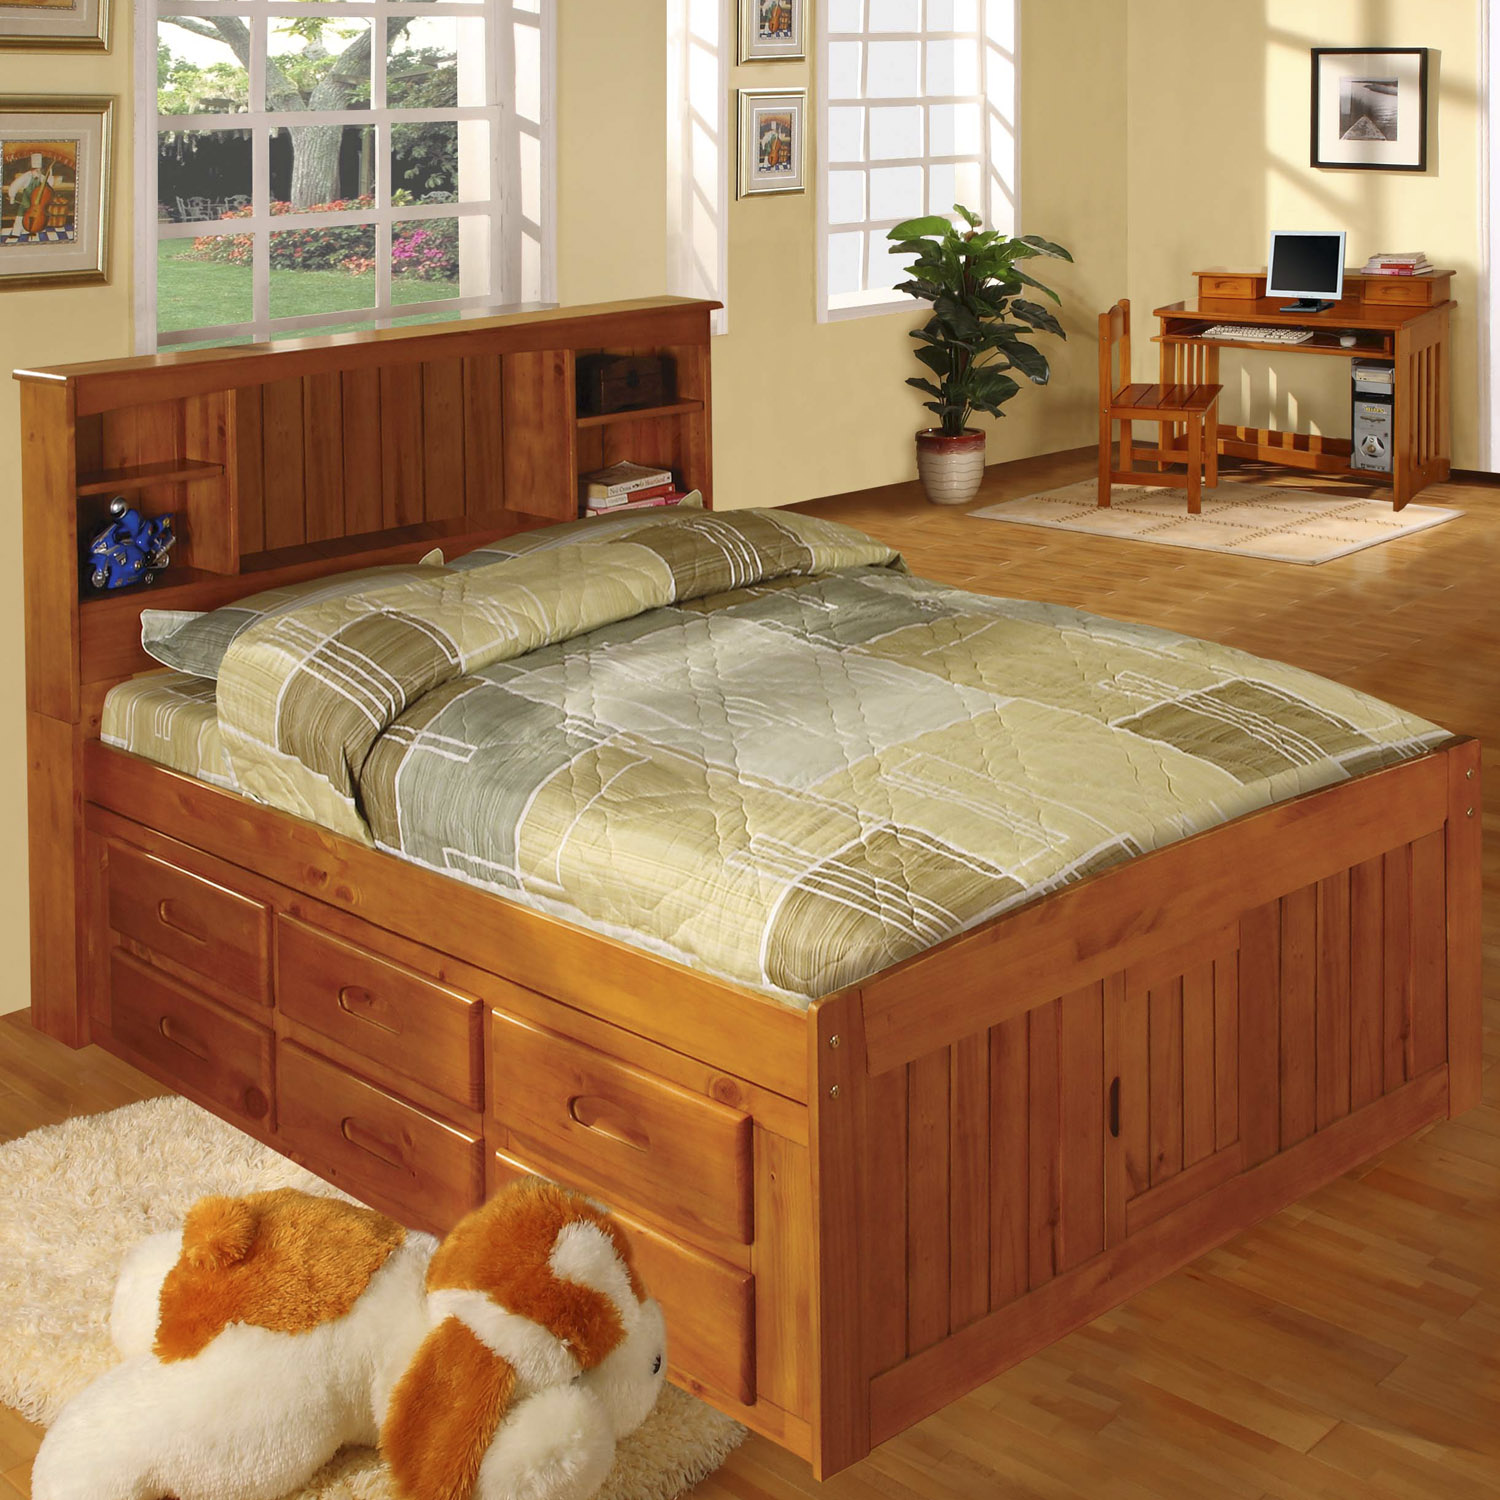 american furniture classics model 2121 12 bch solid pine bookcase headboard full captains bed with 12 underbed drawers in honey